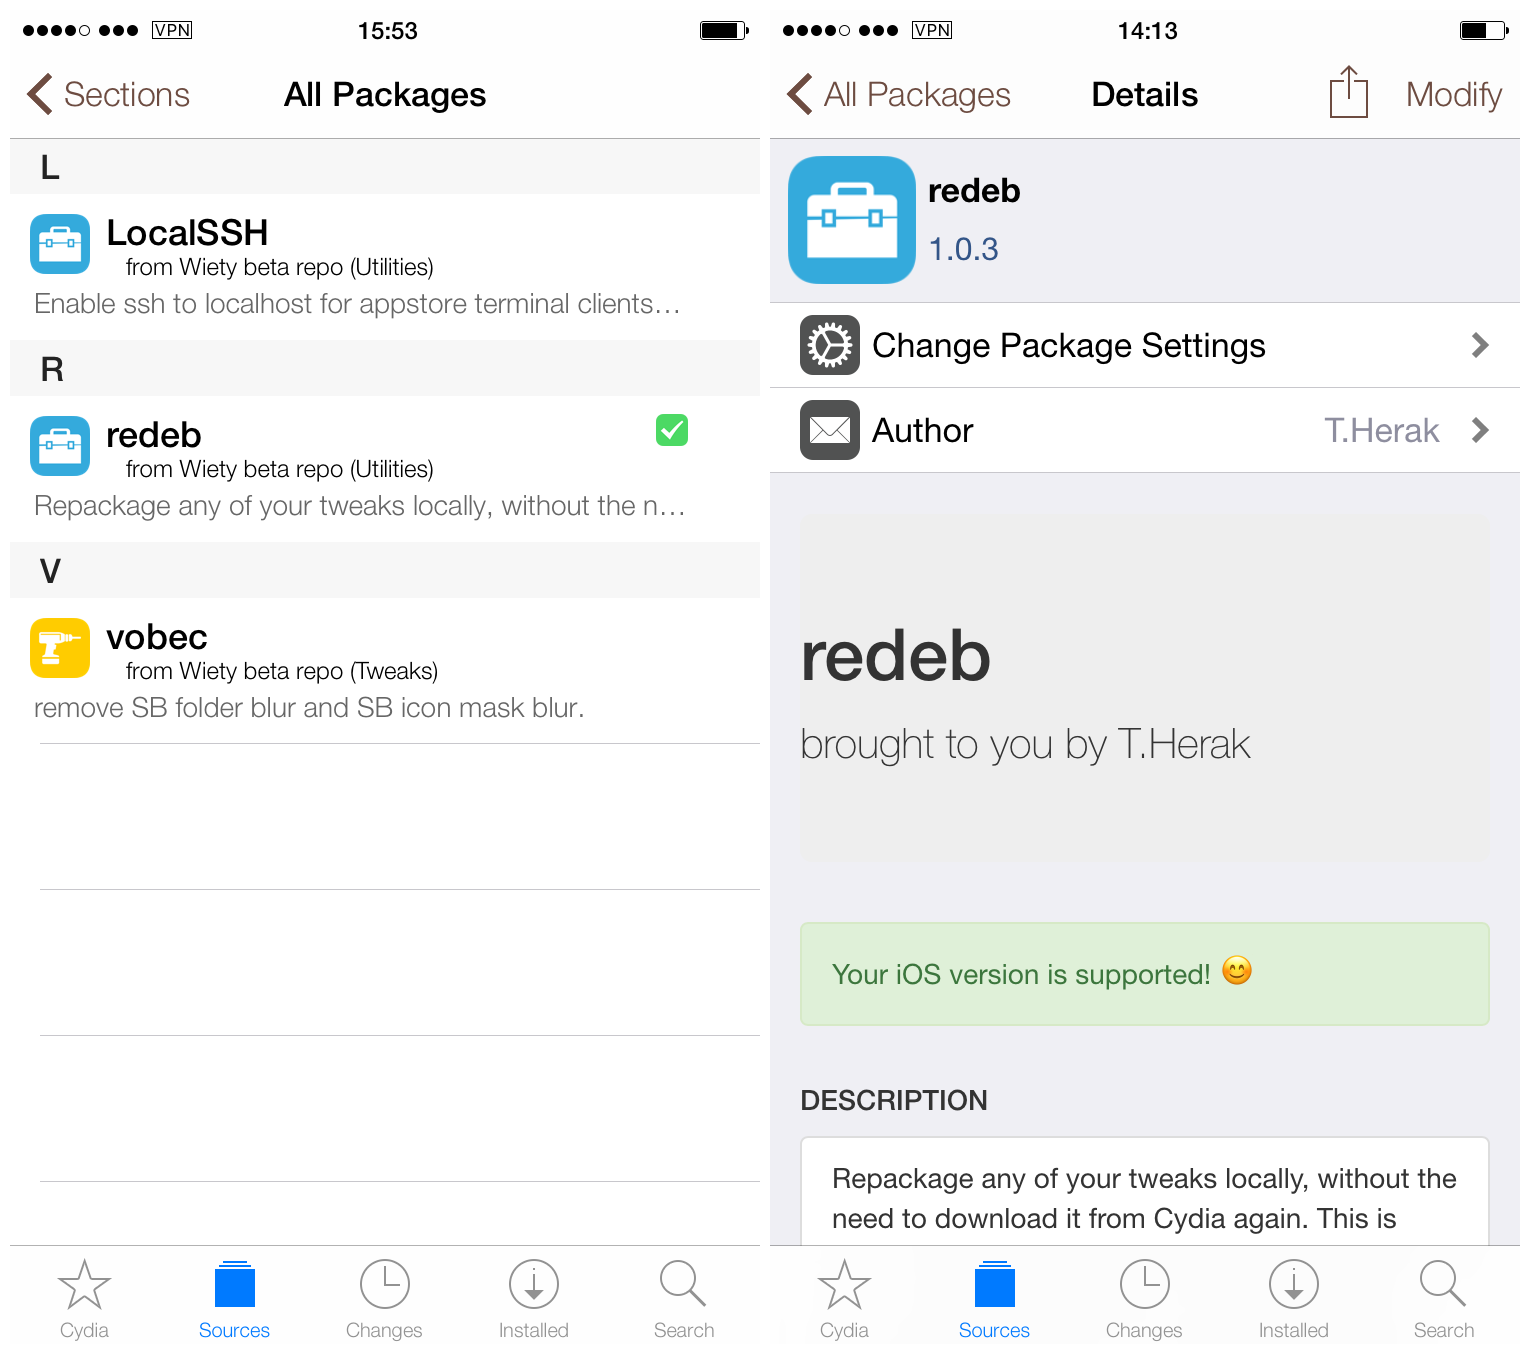 How to save jailbreak tweaks on your device with redeb